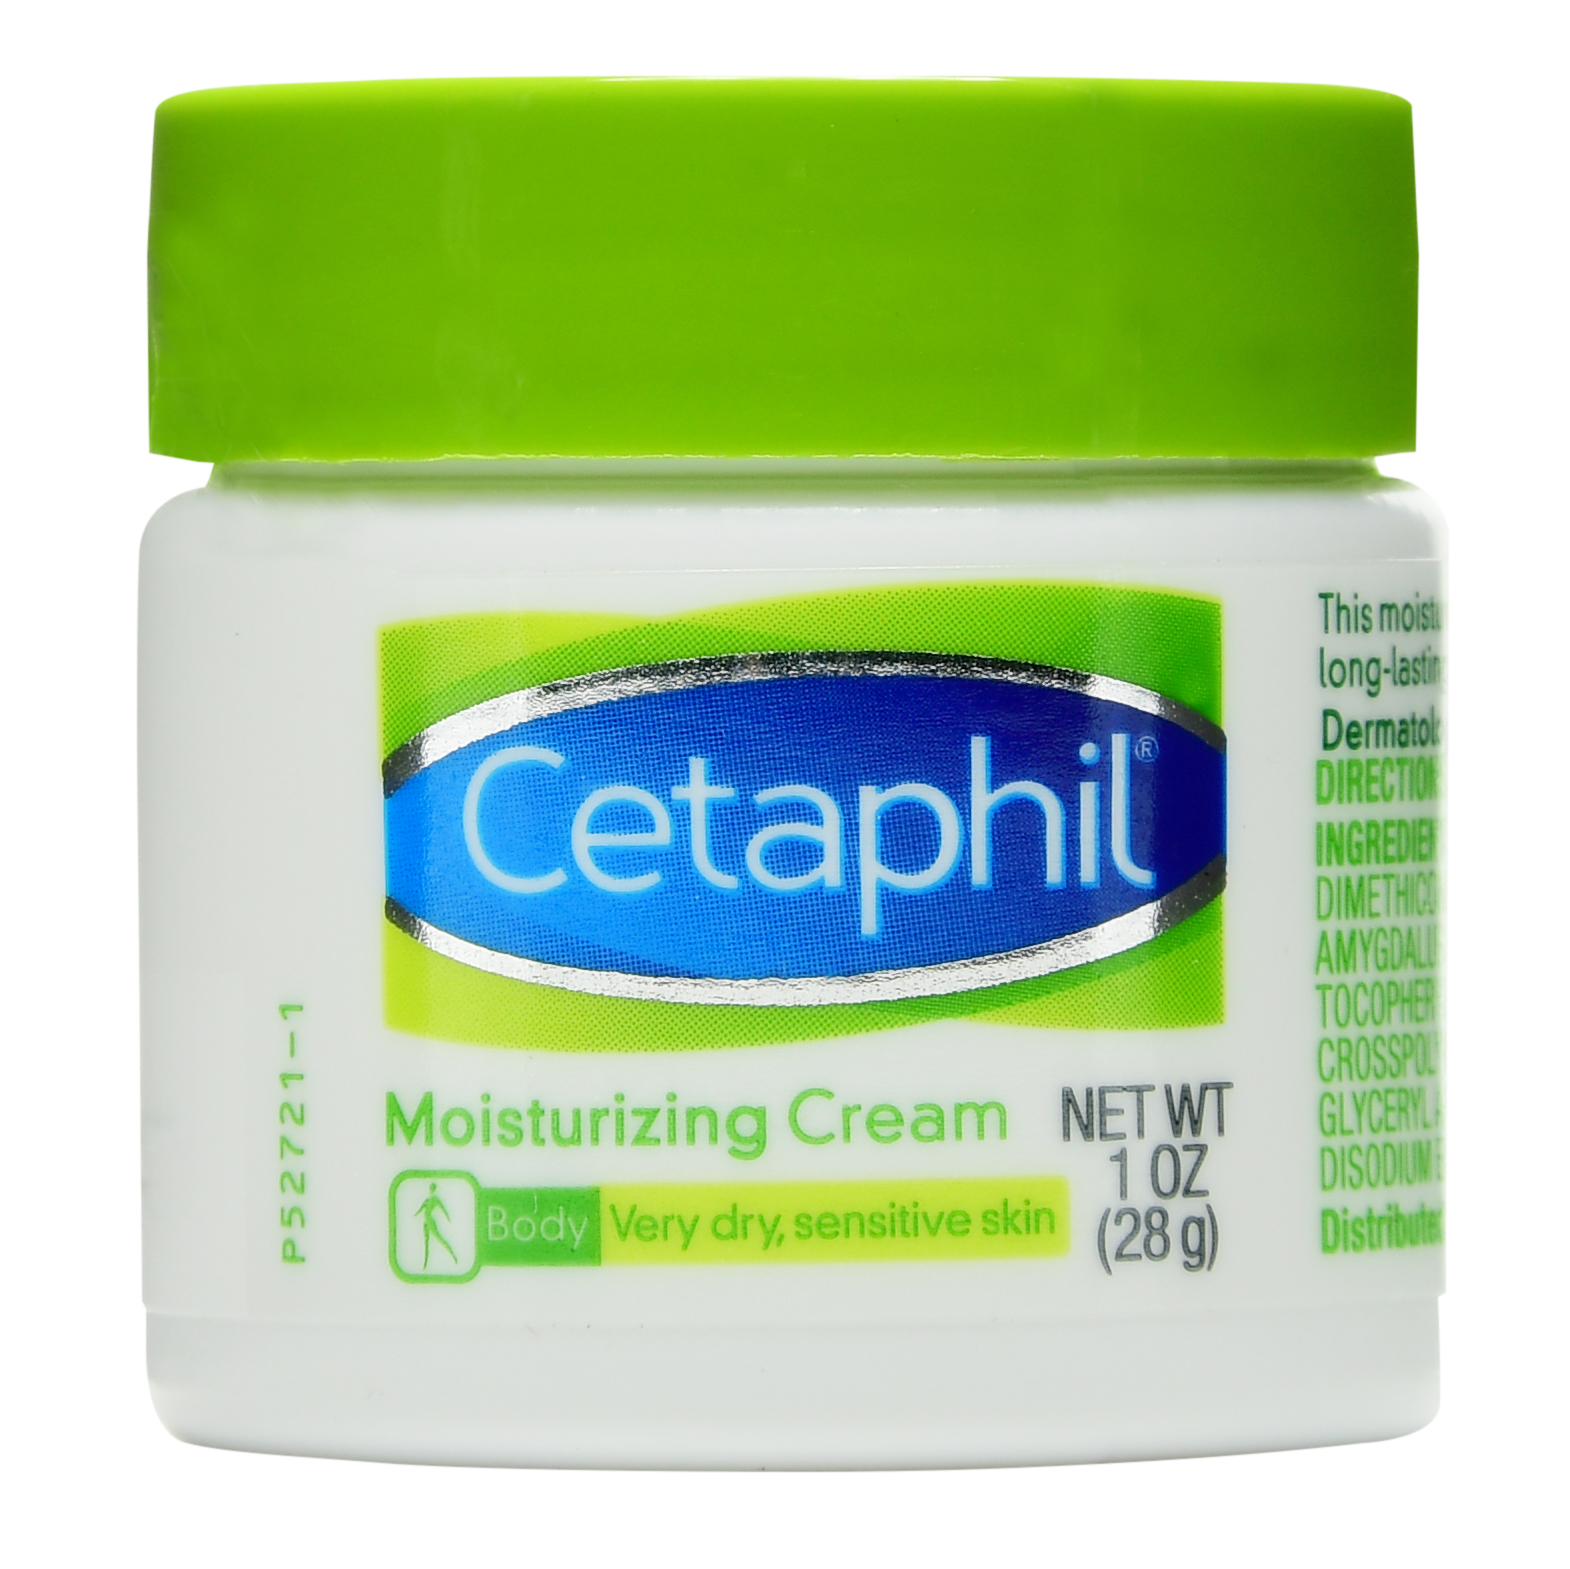 Cetaphil Moisturizing Cream, 1 Oz